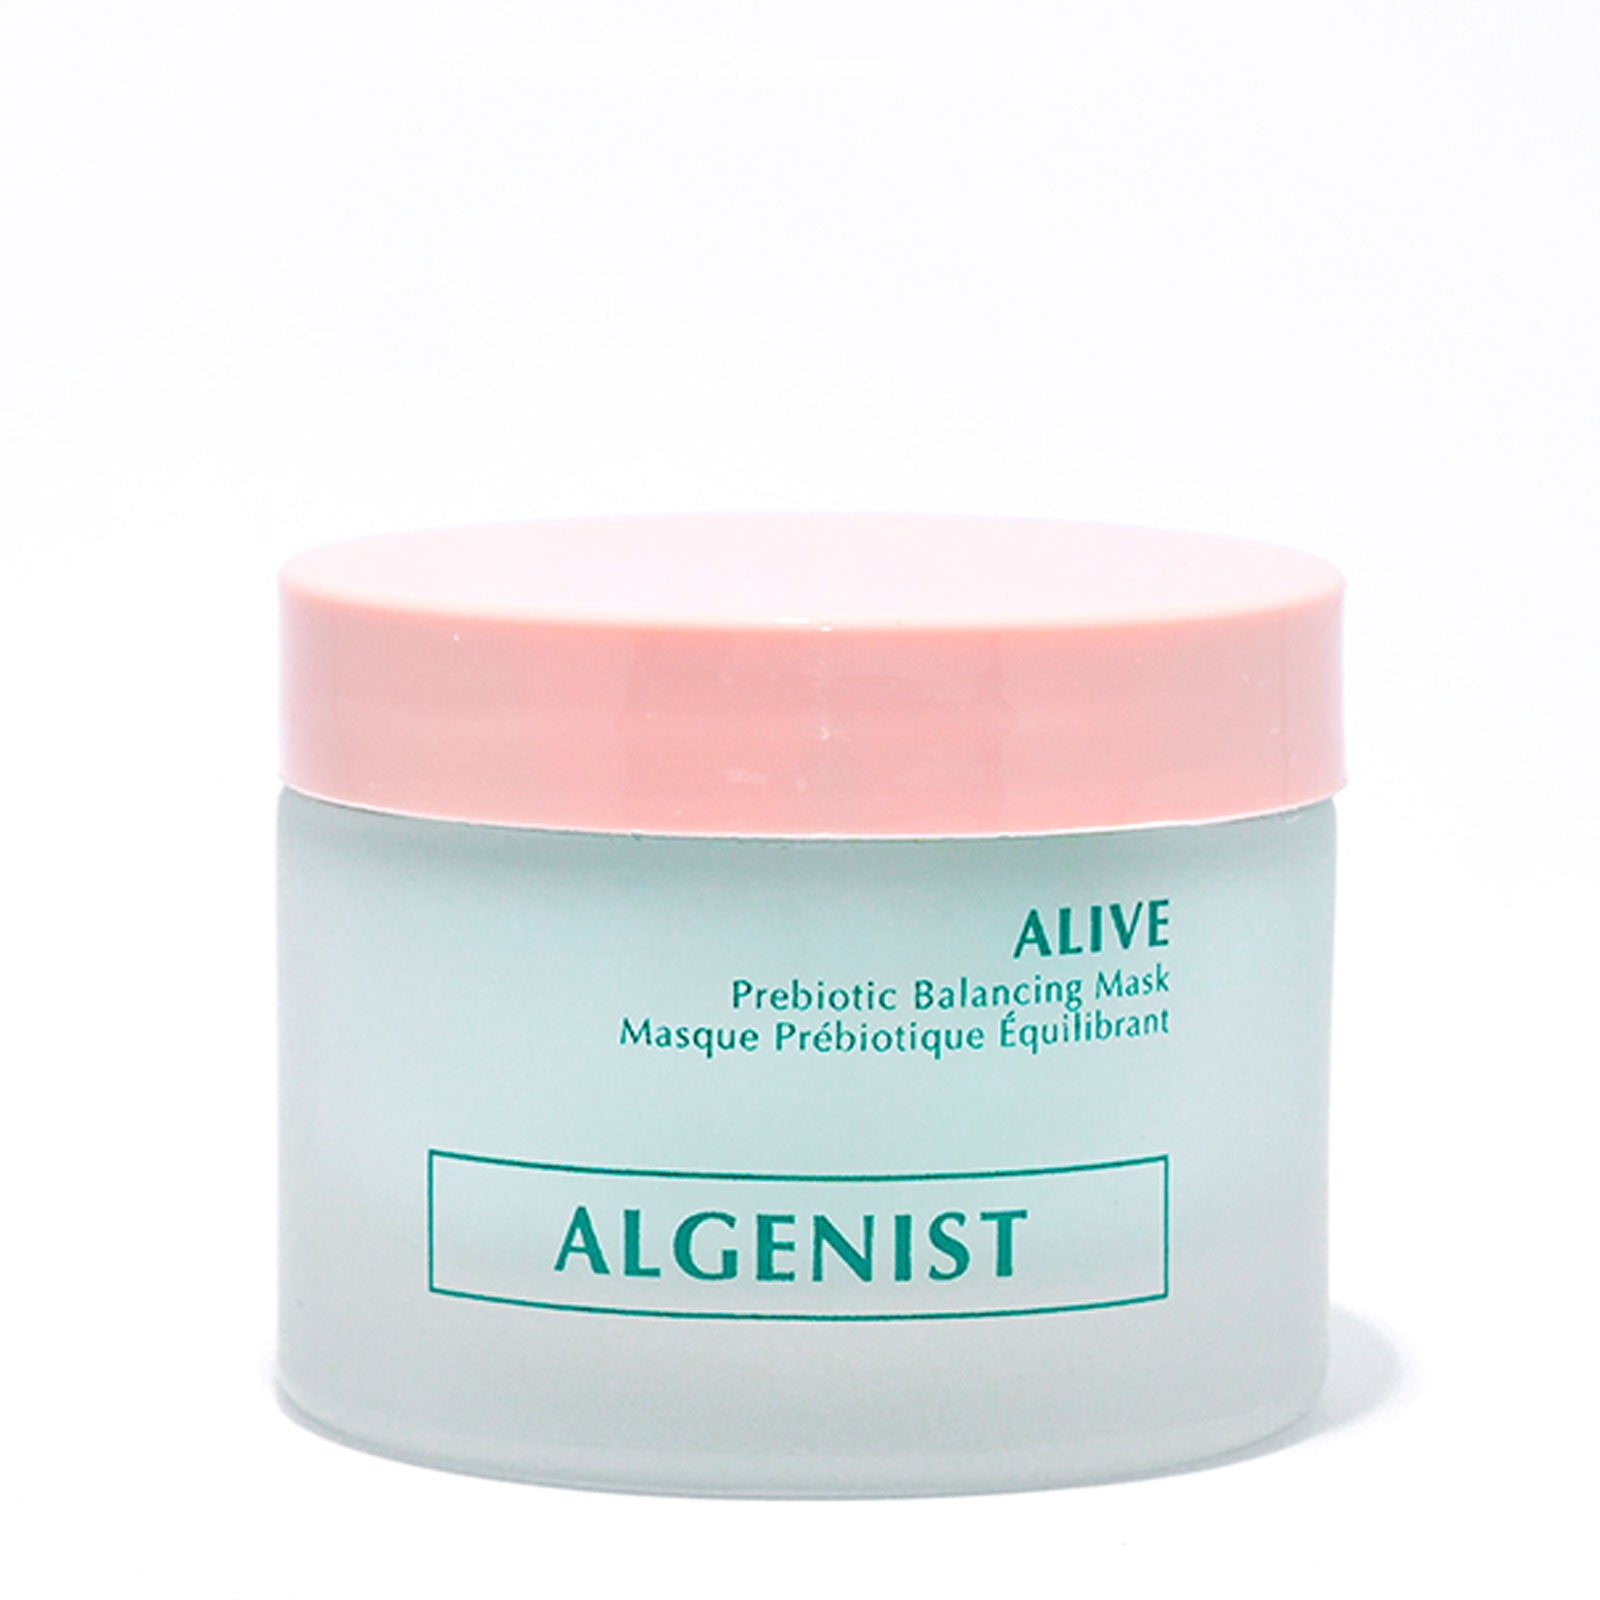 ALGENIST Prebiotic Balancing Mask 50ml